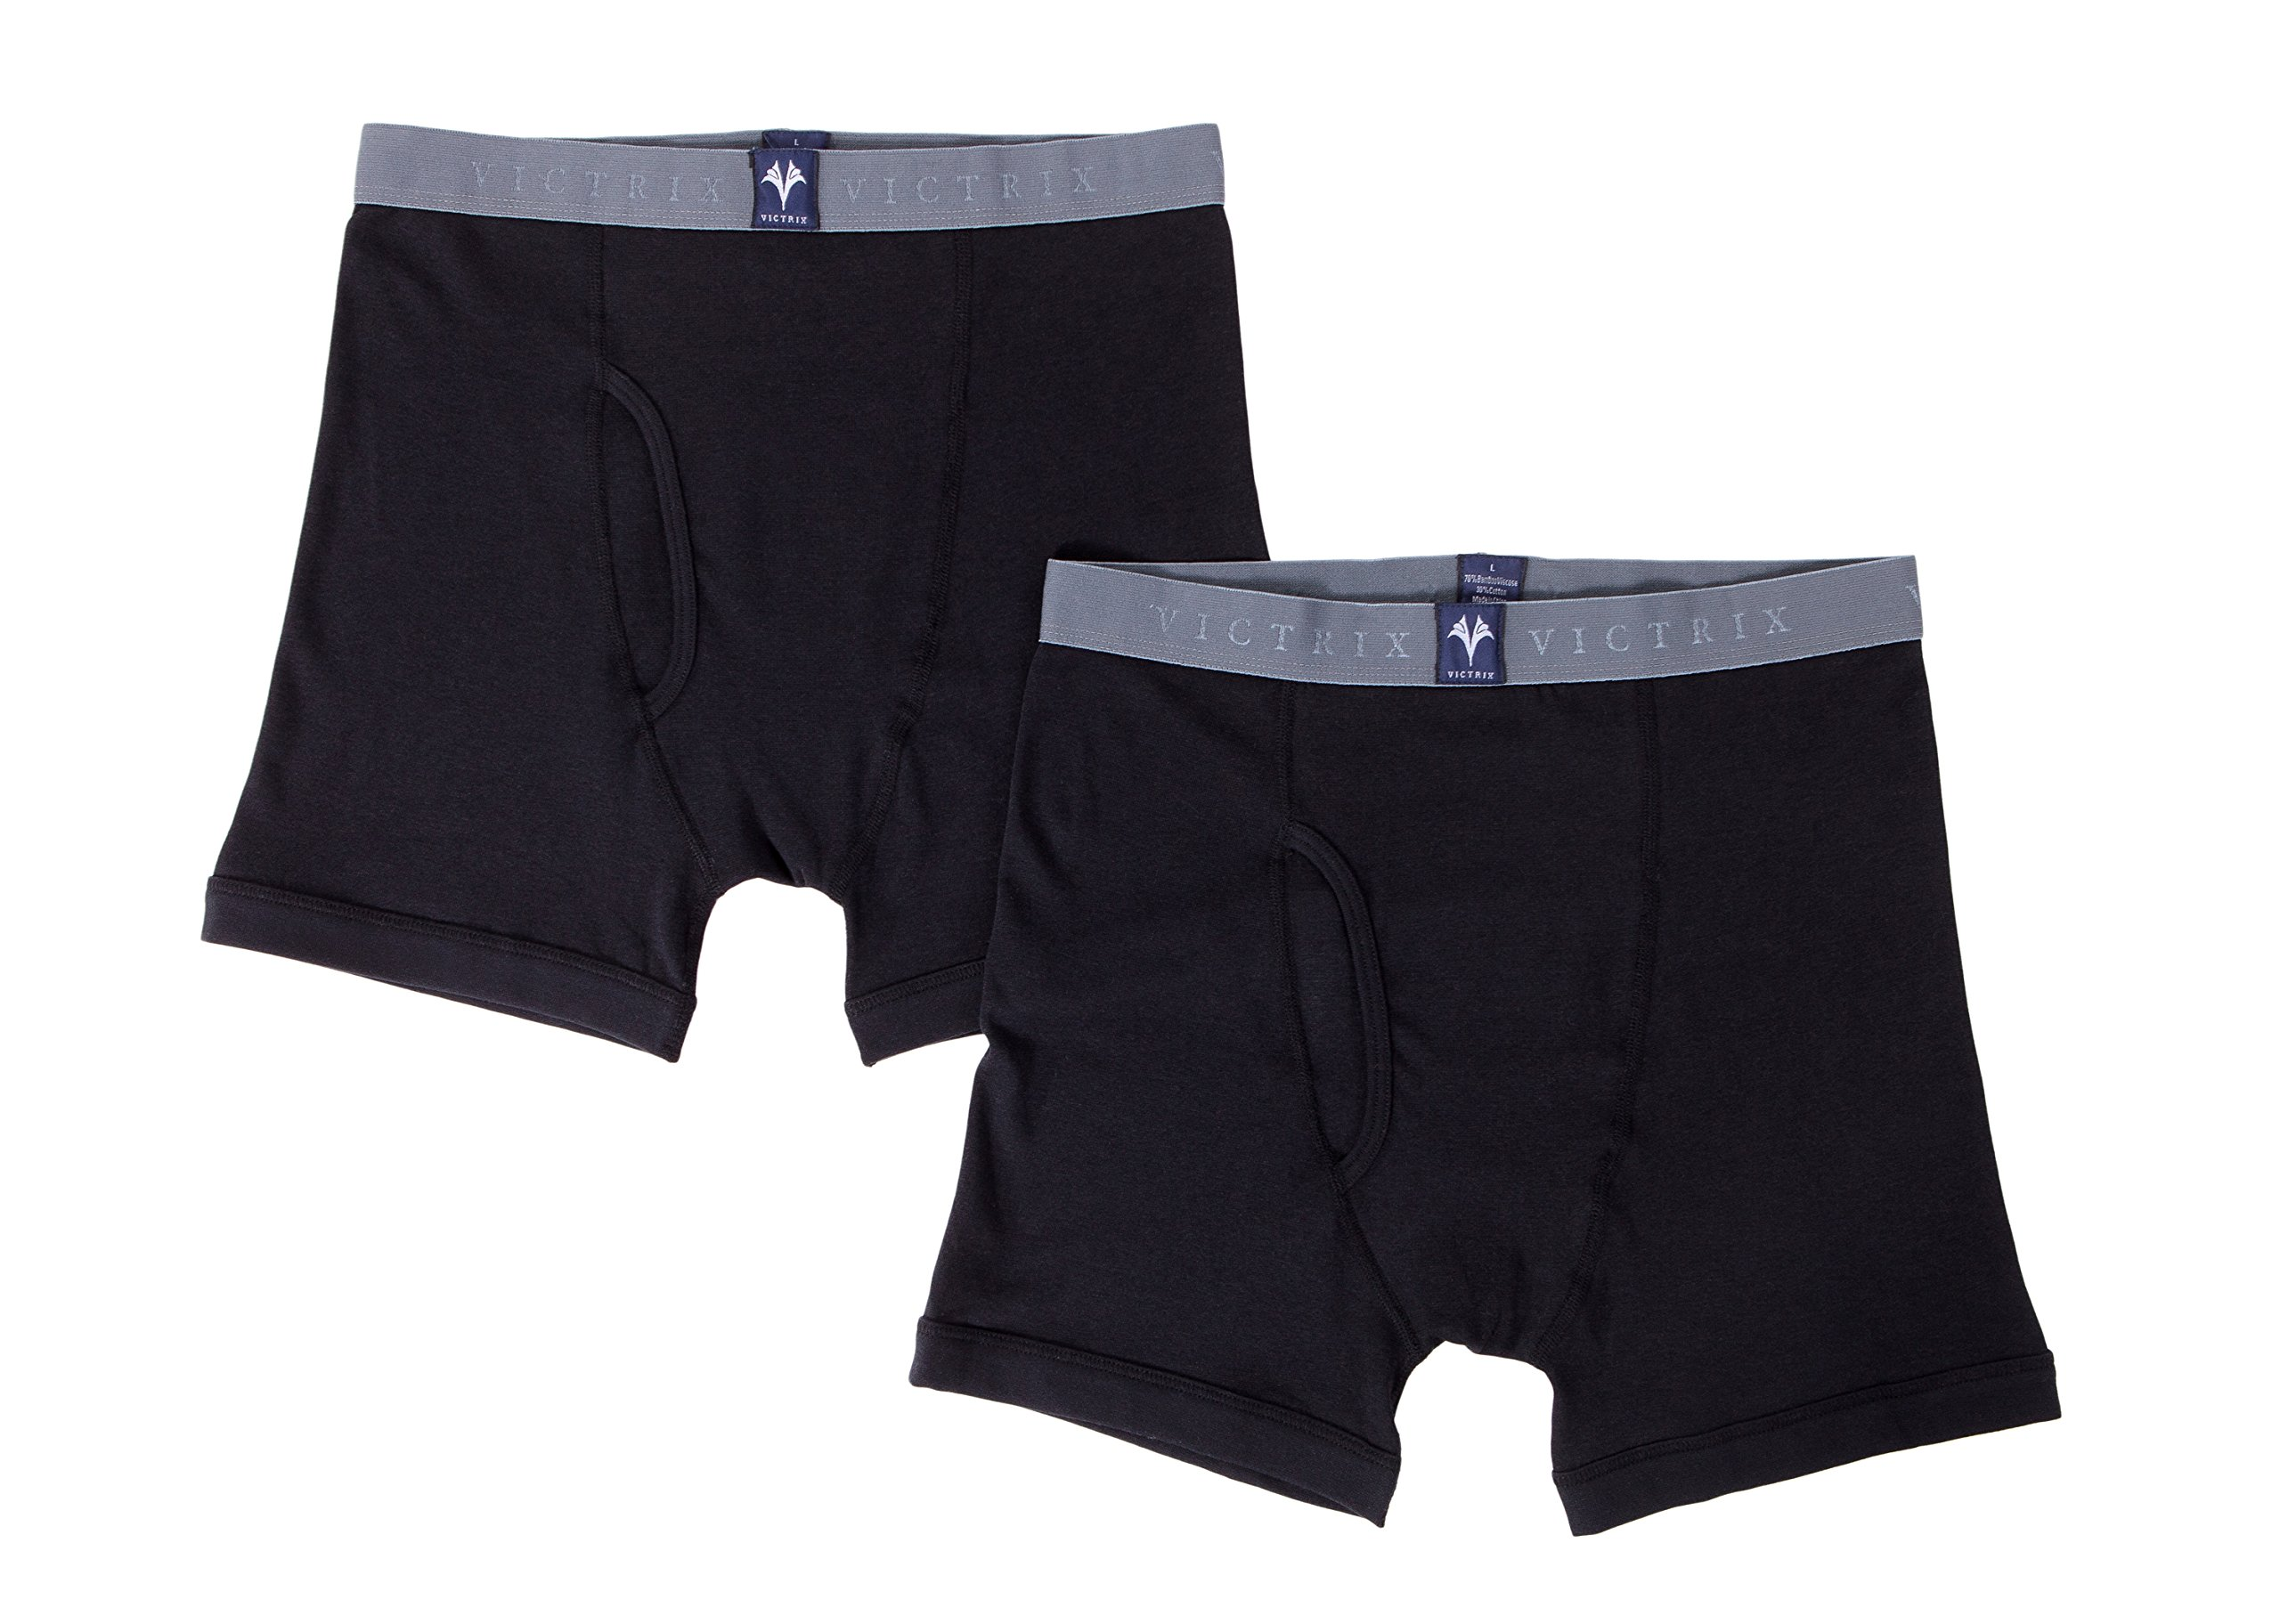 Men's Athletic Boxer Briefs in Bamboo Viscose - 2 Pack Underwear by Texere (Black, Large) Holiday Gift for Guys MB6303-BLK-L